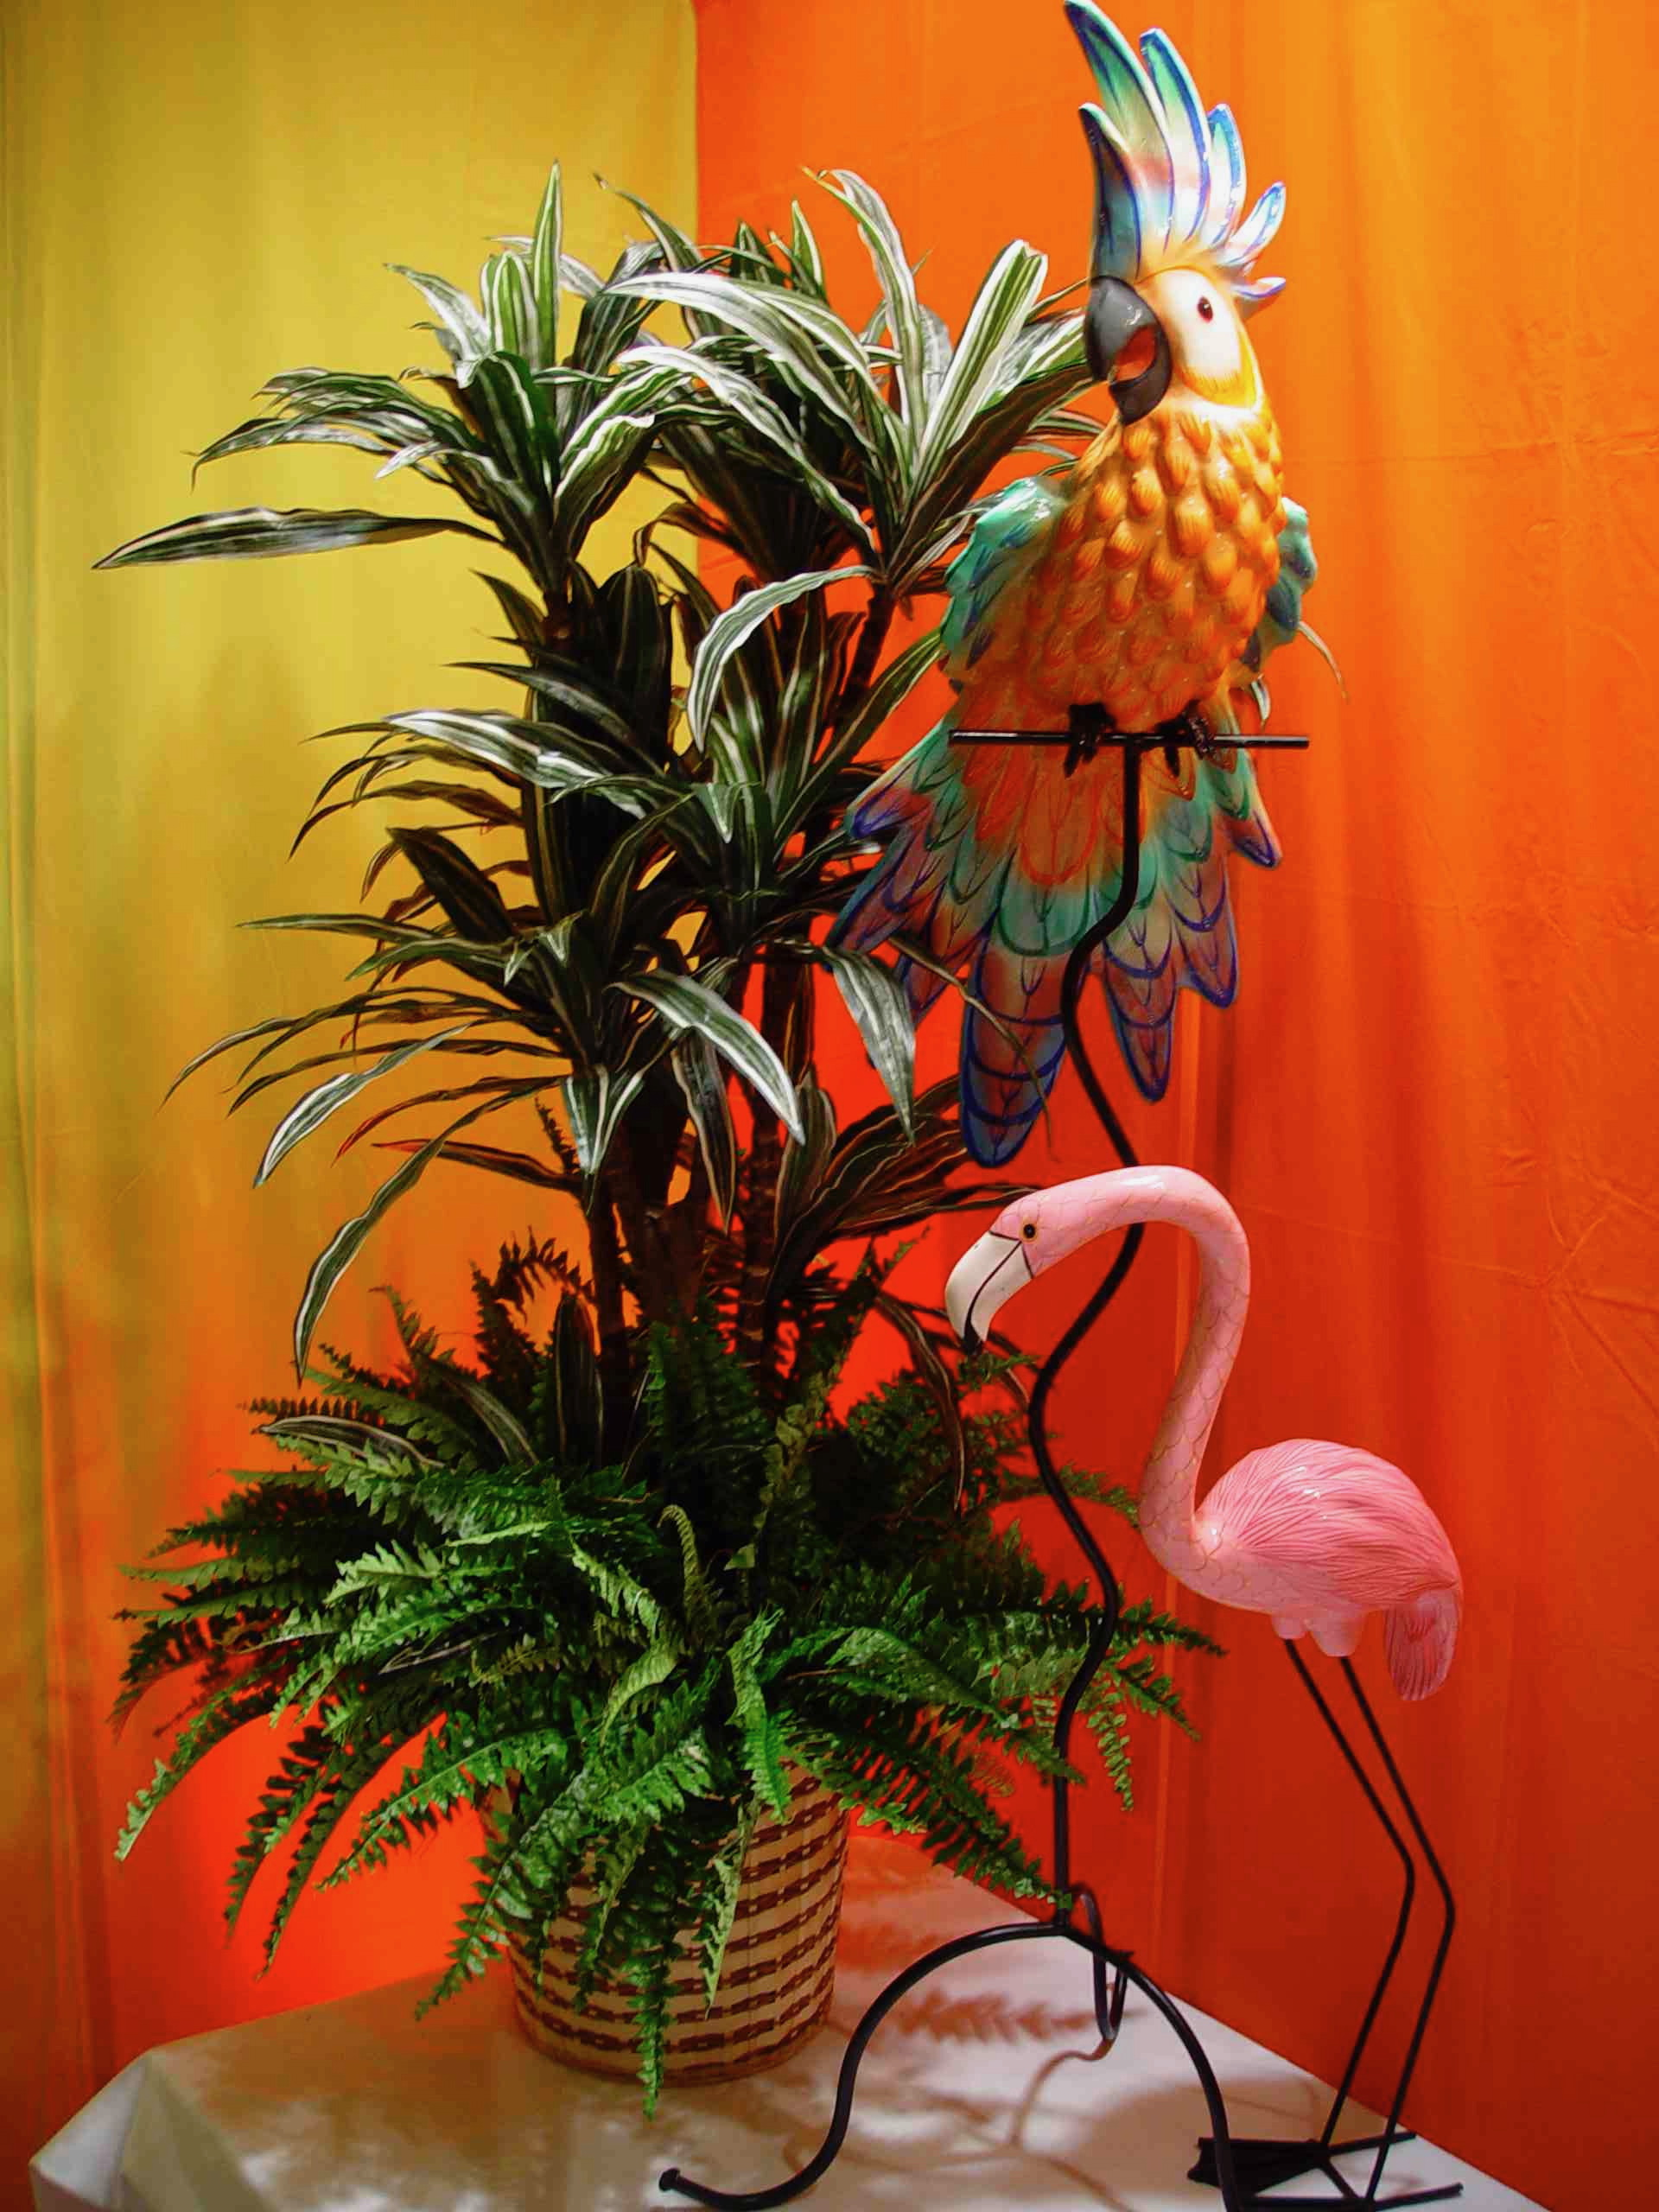 tropical+party+rentals+decor+nj+ny+pa+eggsotic+events.jpeg